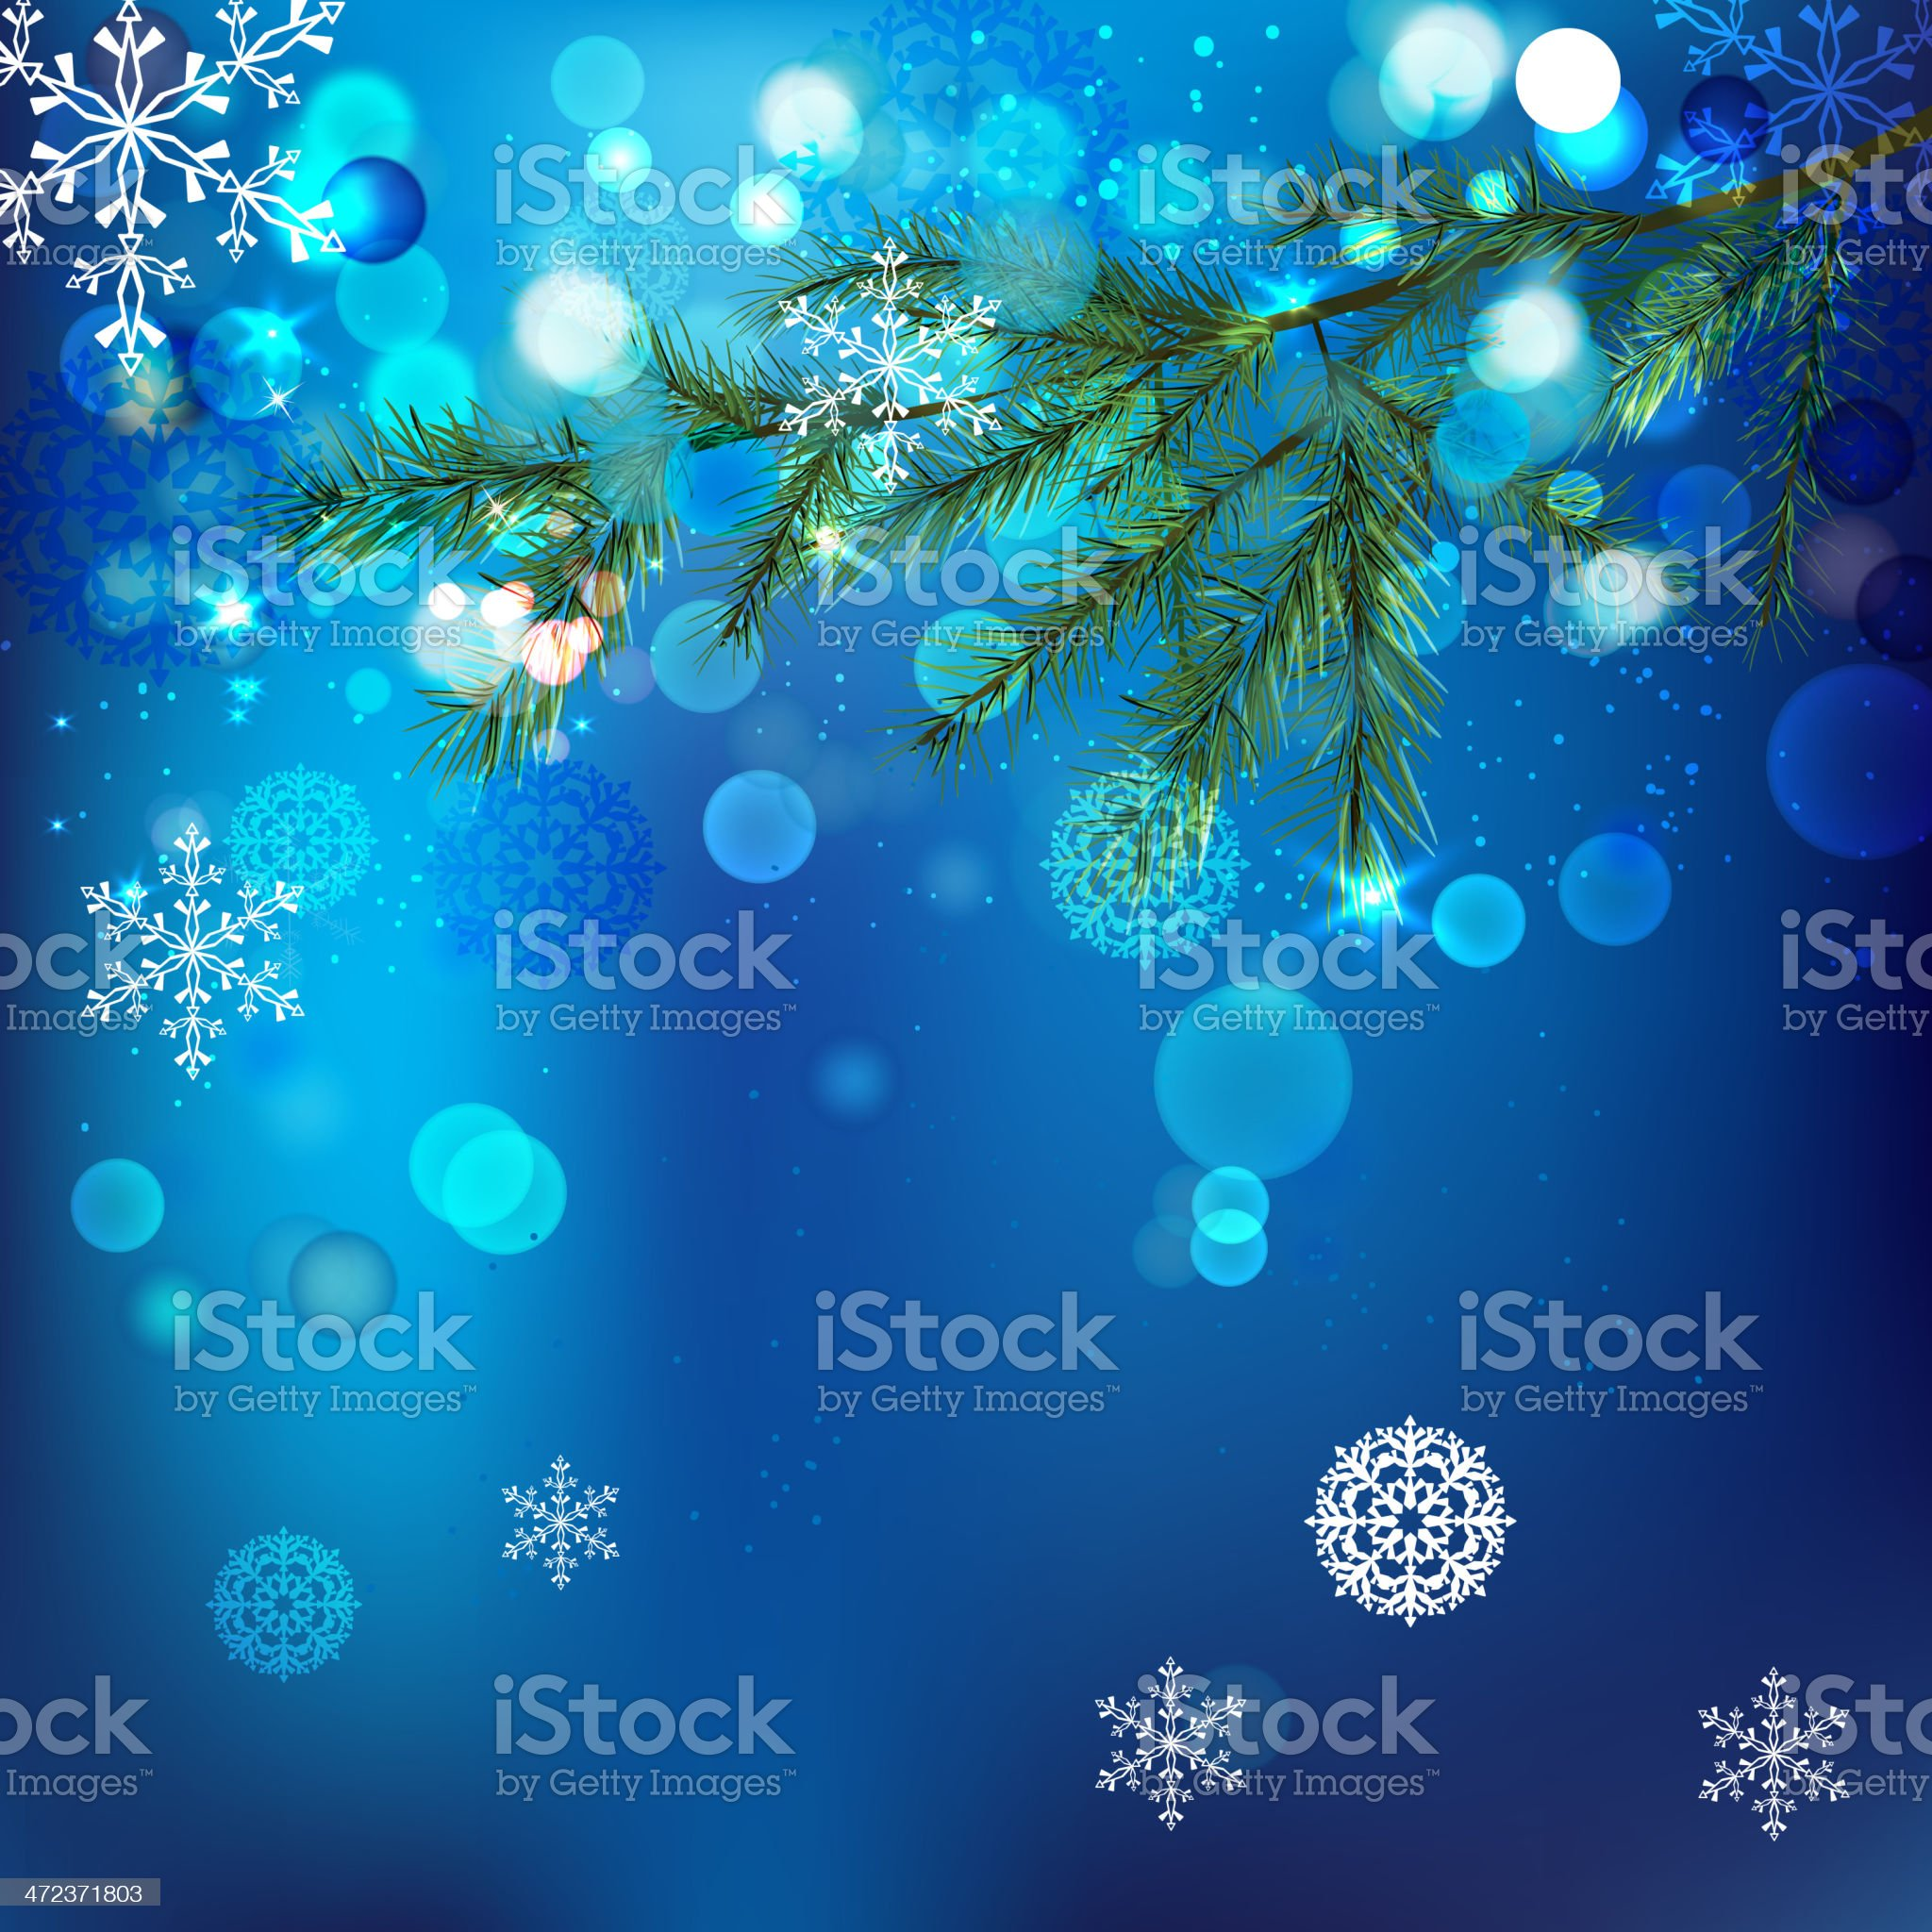 05_Snow branches royalty-free stock vector art